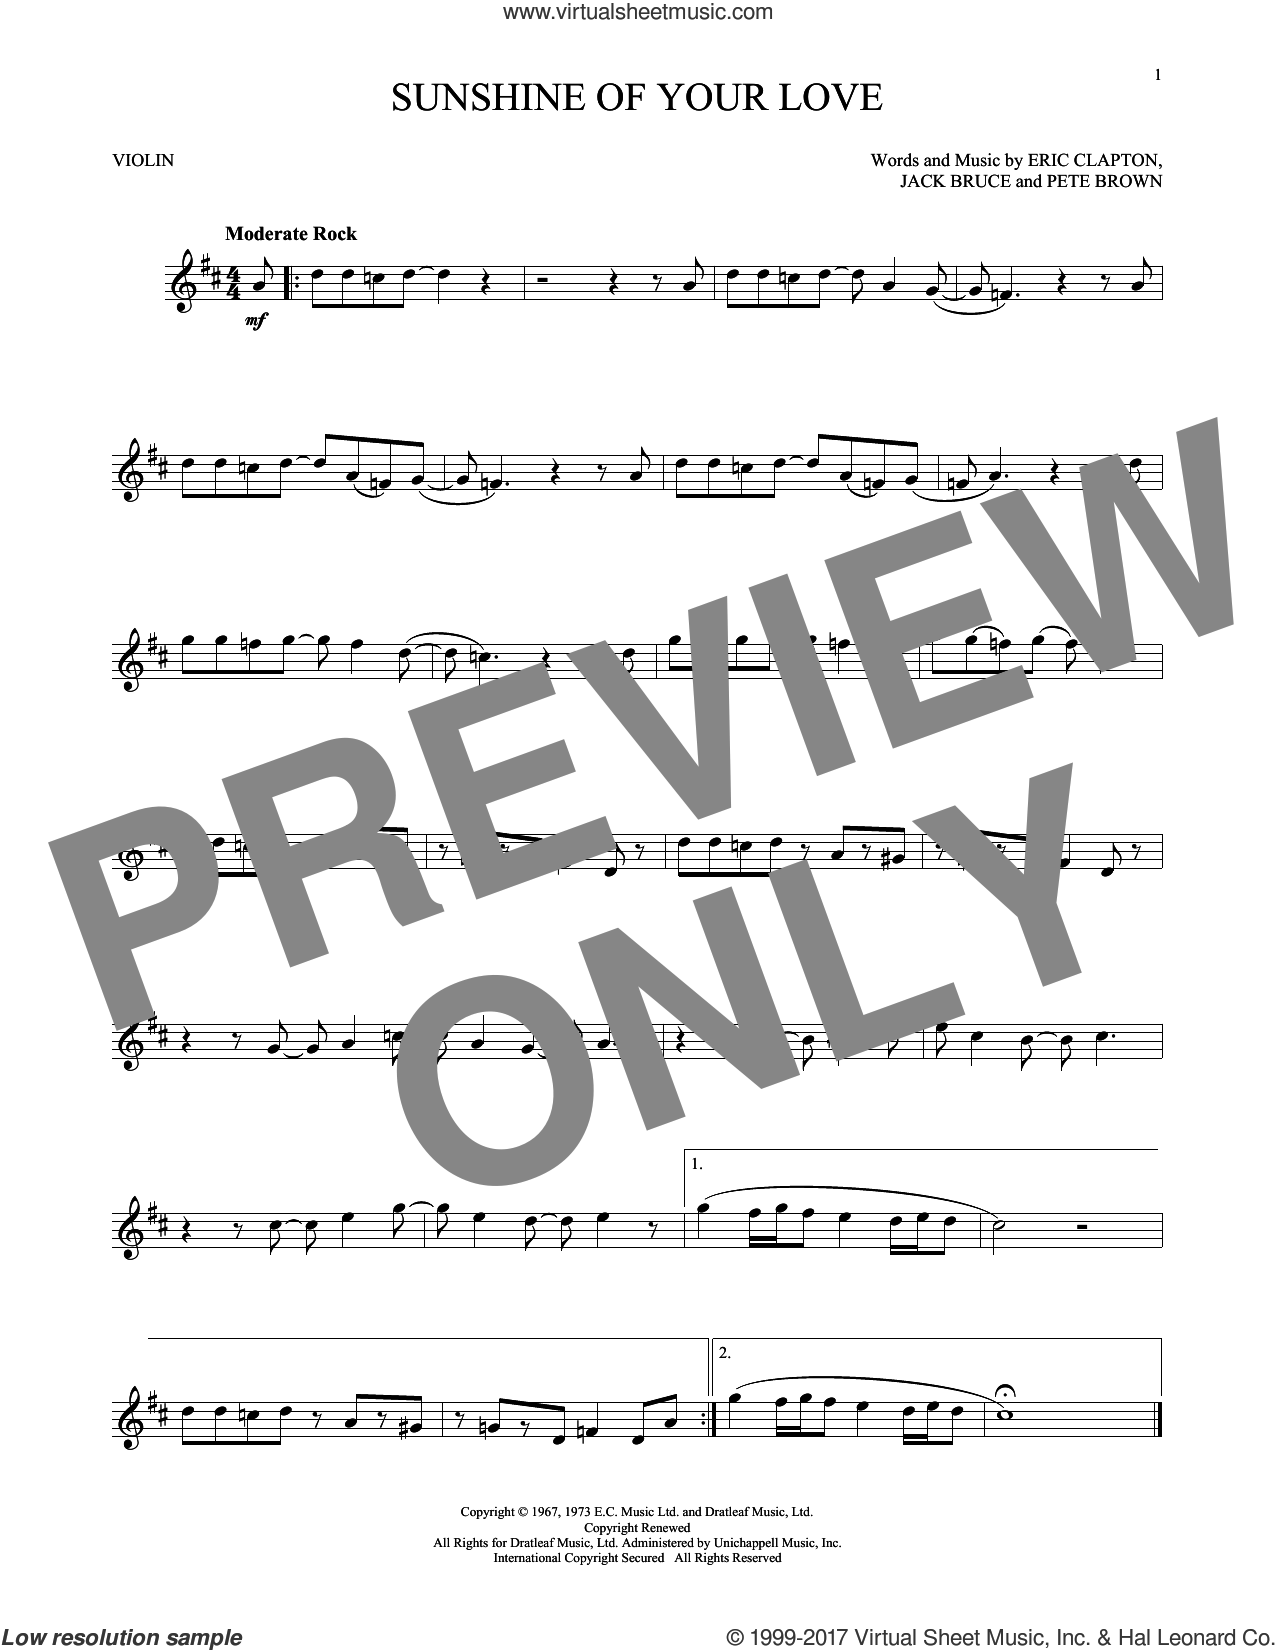 Sunshine Of Your Love sheet music for violin solo by Cream, Eric Clapton, Jack Bruce and Pete Brown, intermediate skill level